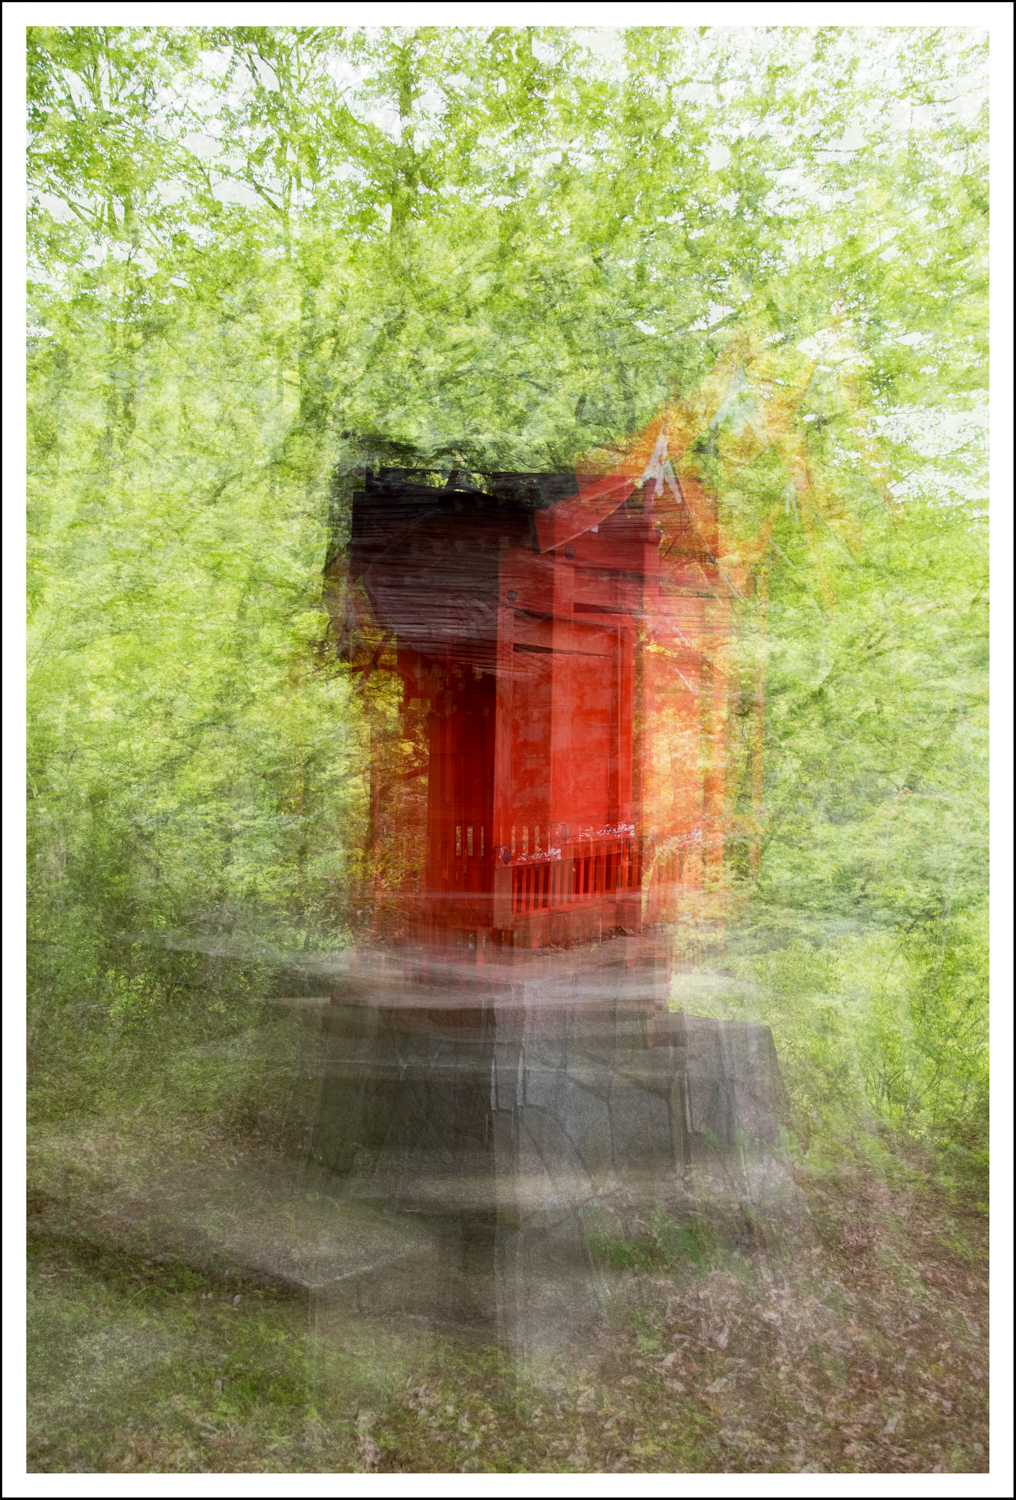 Just playing with multiple exposures.  10 exposures while walking around this little shrine.